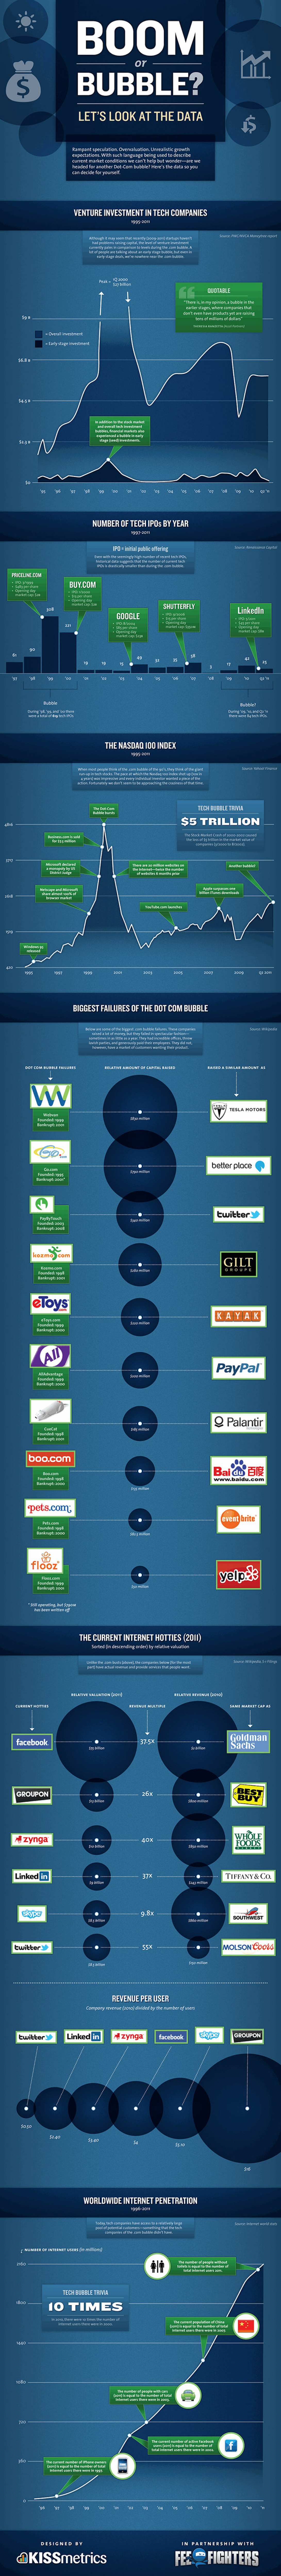 Boom or Bubble? Infographic